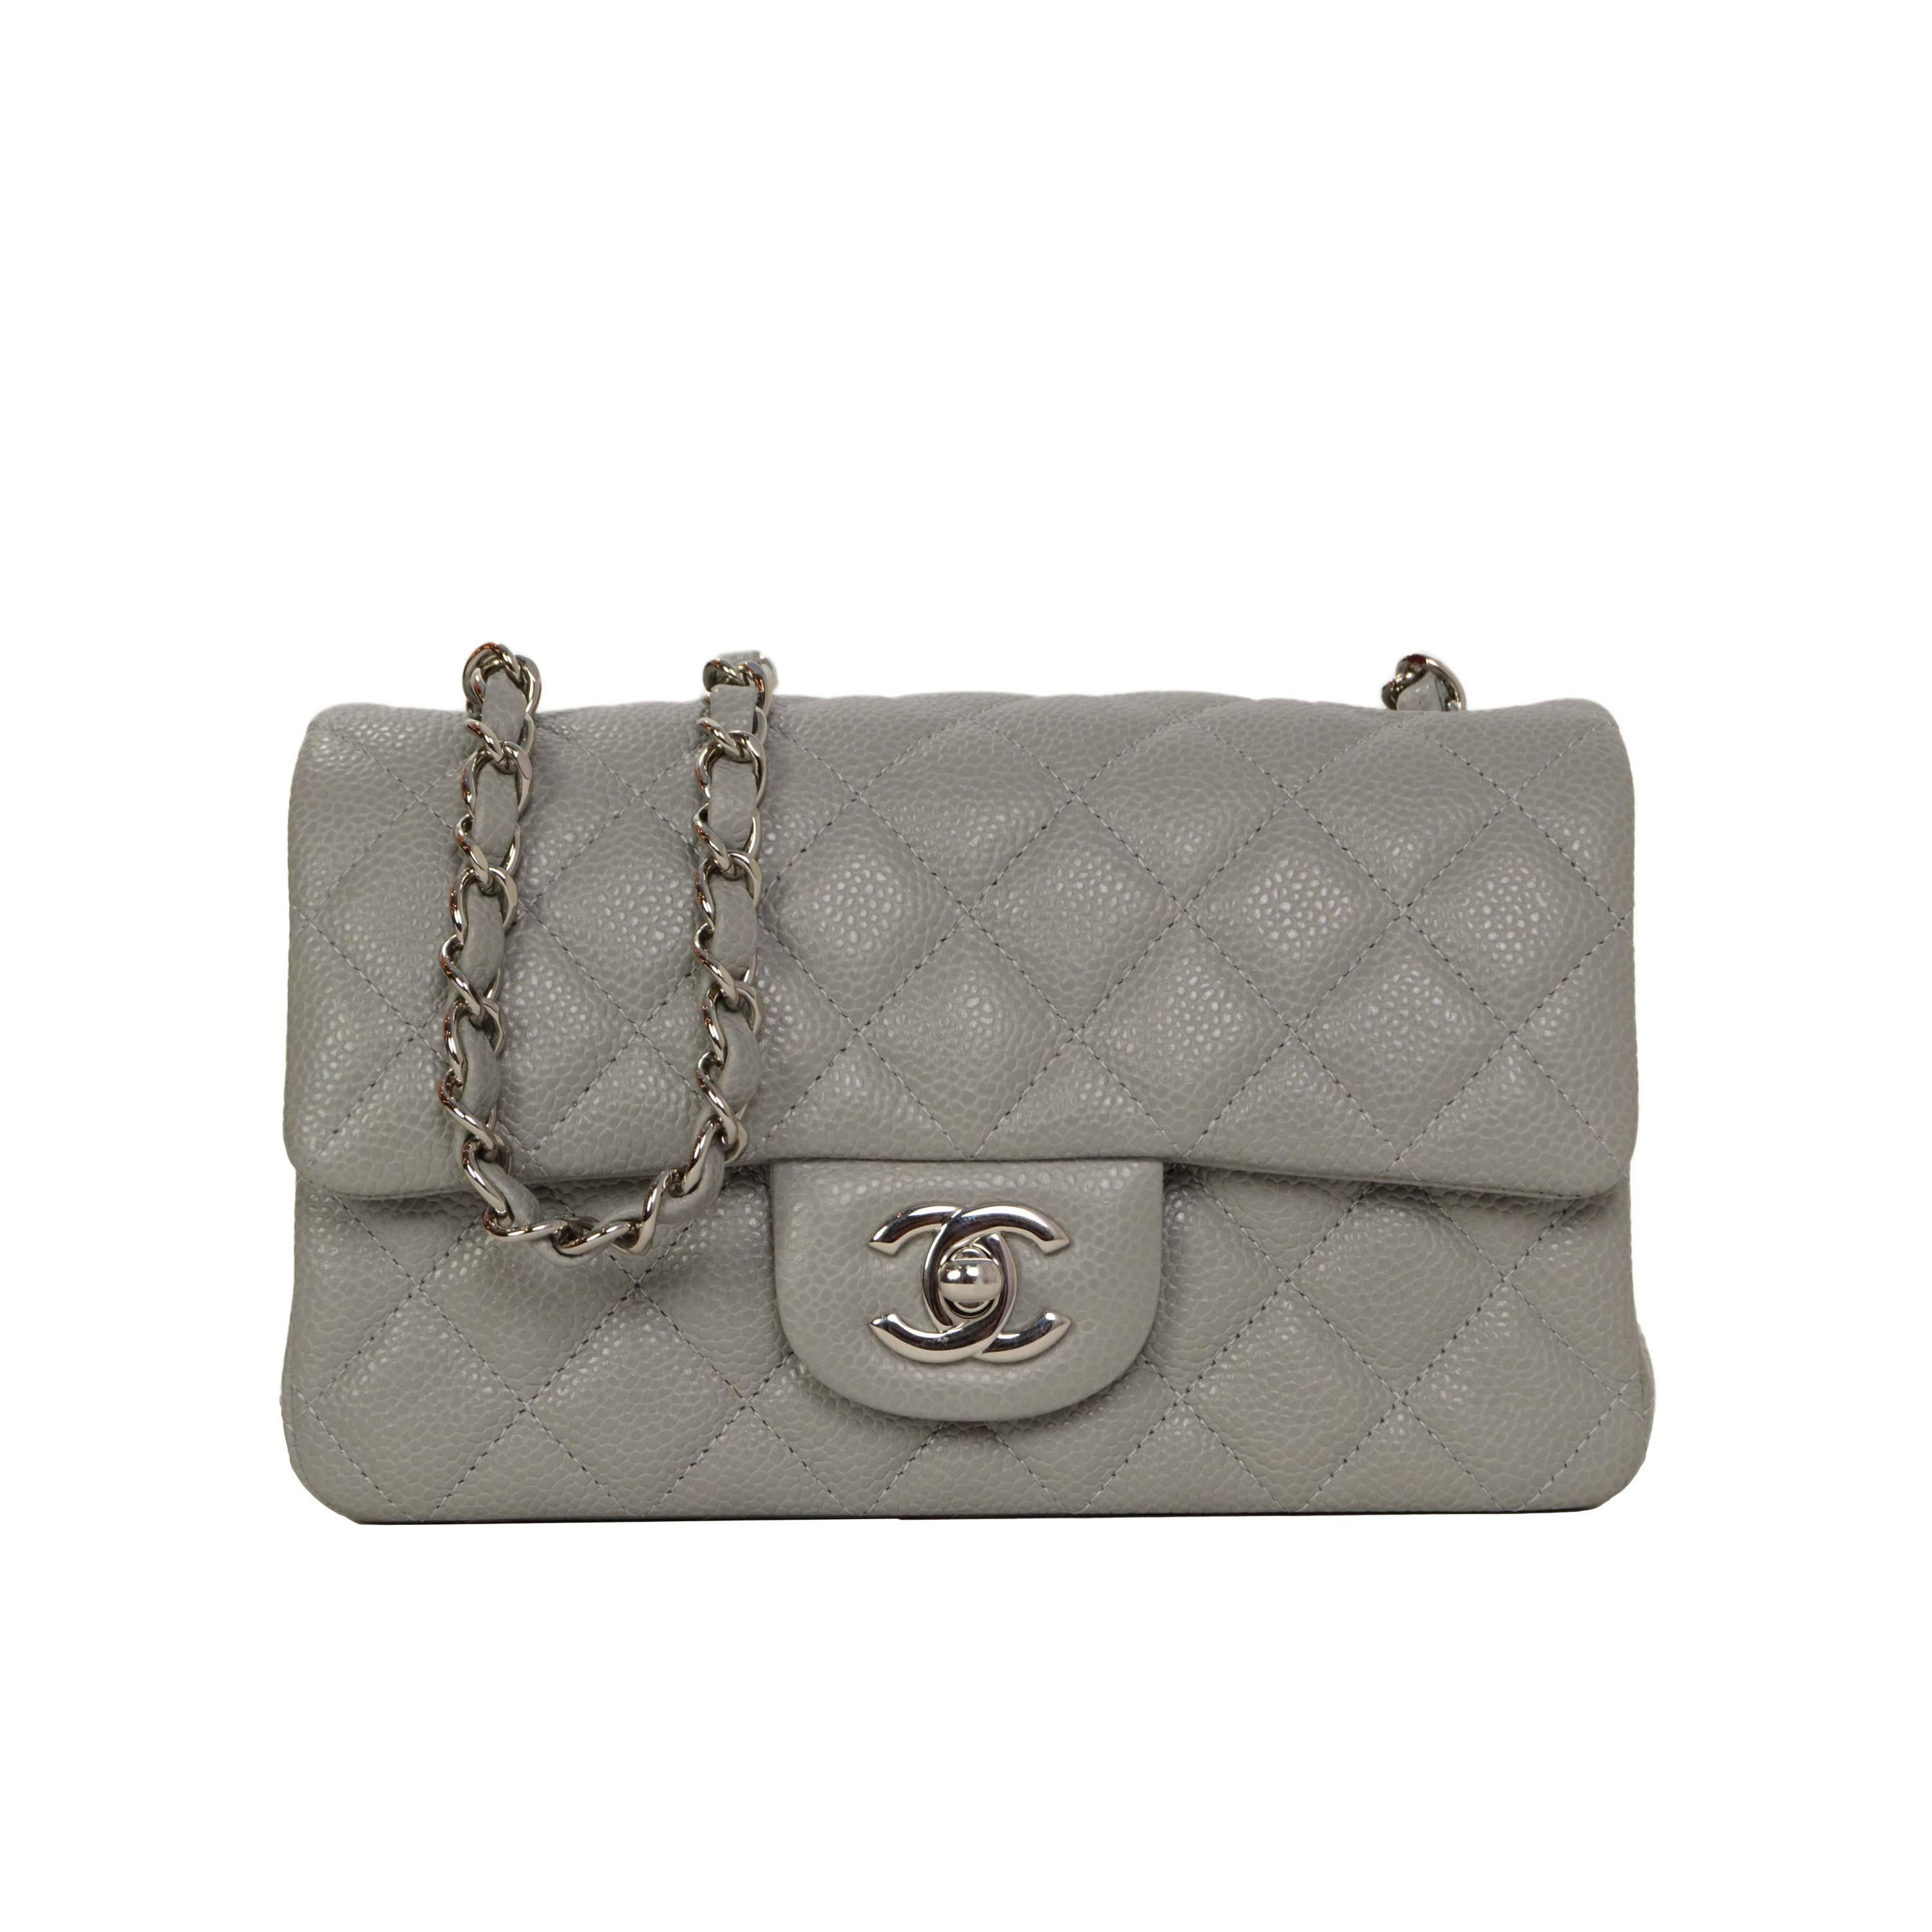 6298429e4dc3 Chanel Grey Quilted Caviar Rectangle Mini Flap Bag SHW at 1stdibs